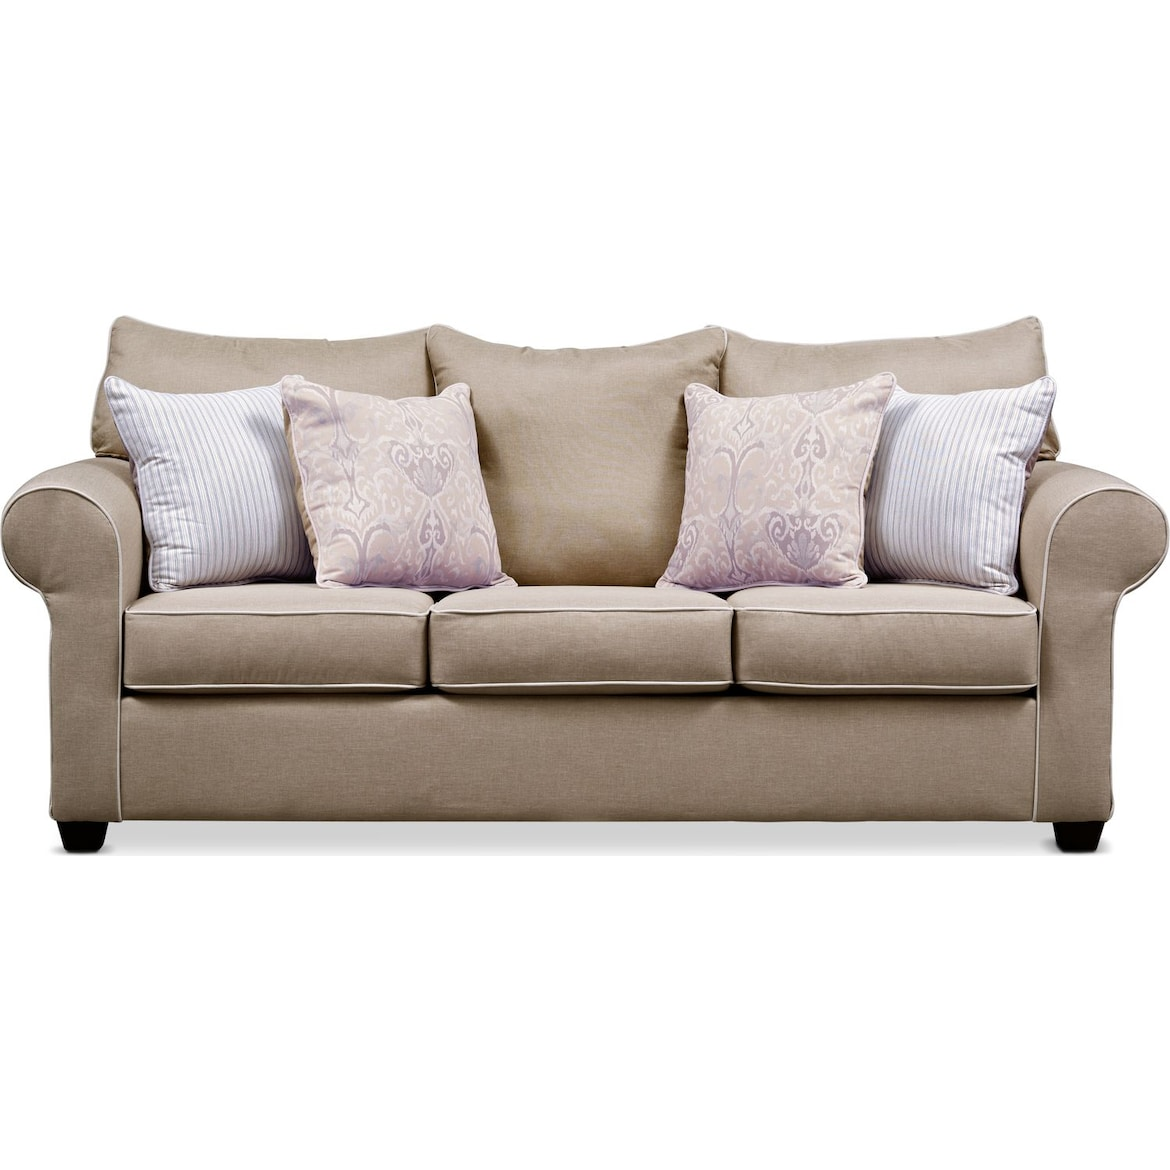 Carla Queen Sleeper Sofa And Loveseat Set American